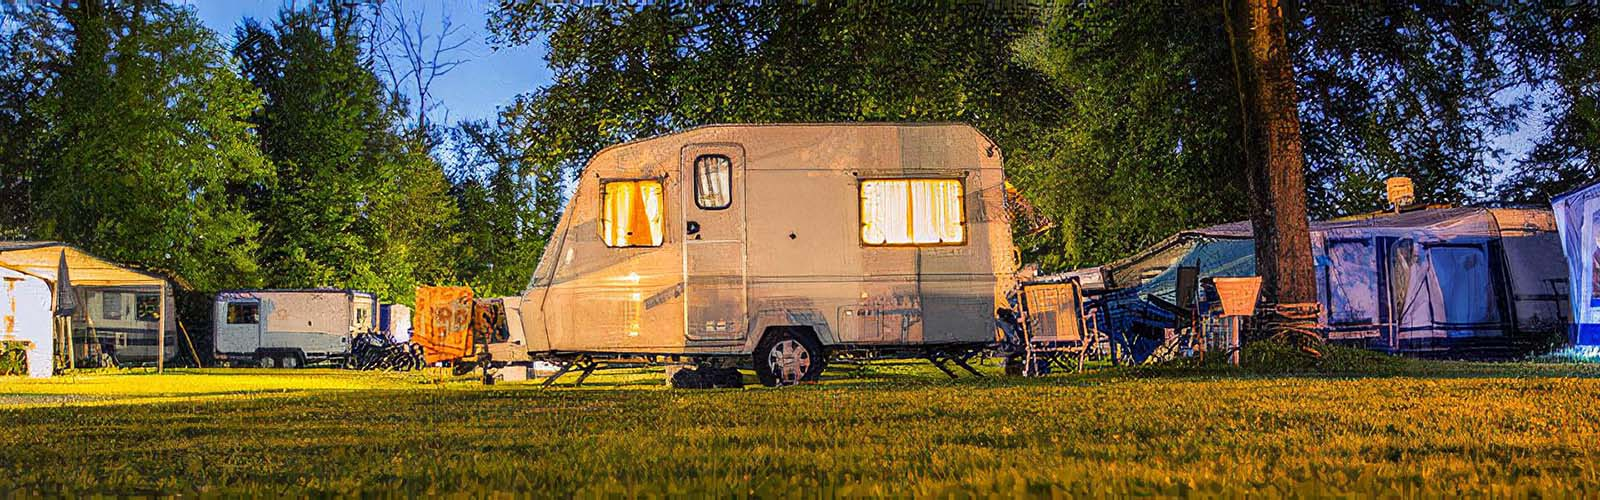 Preview Image for Travel Trailers vs. Pop-Up Campers